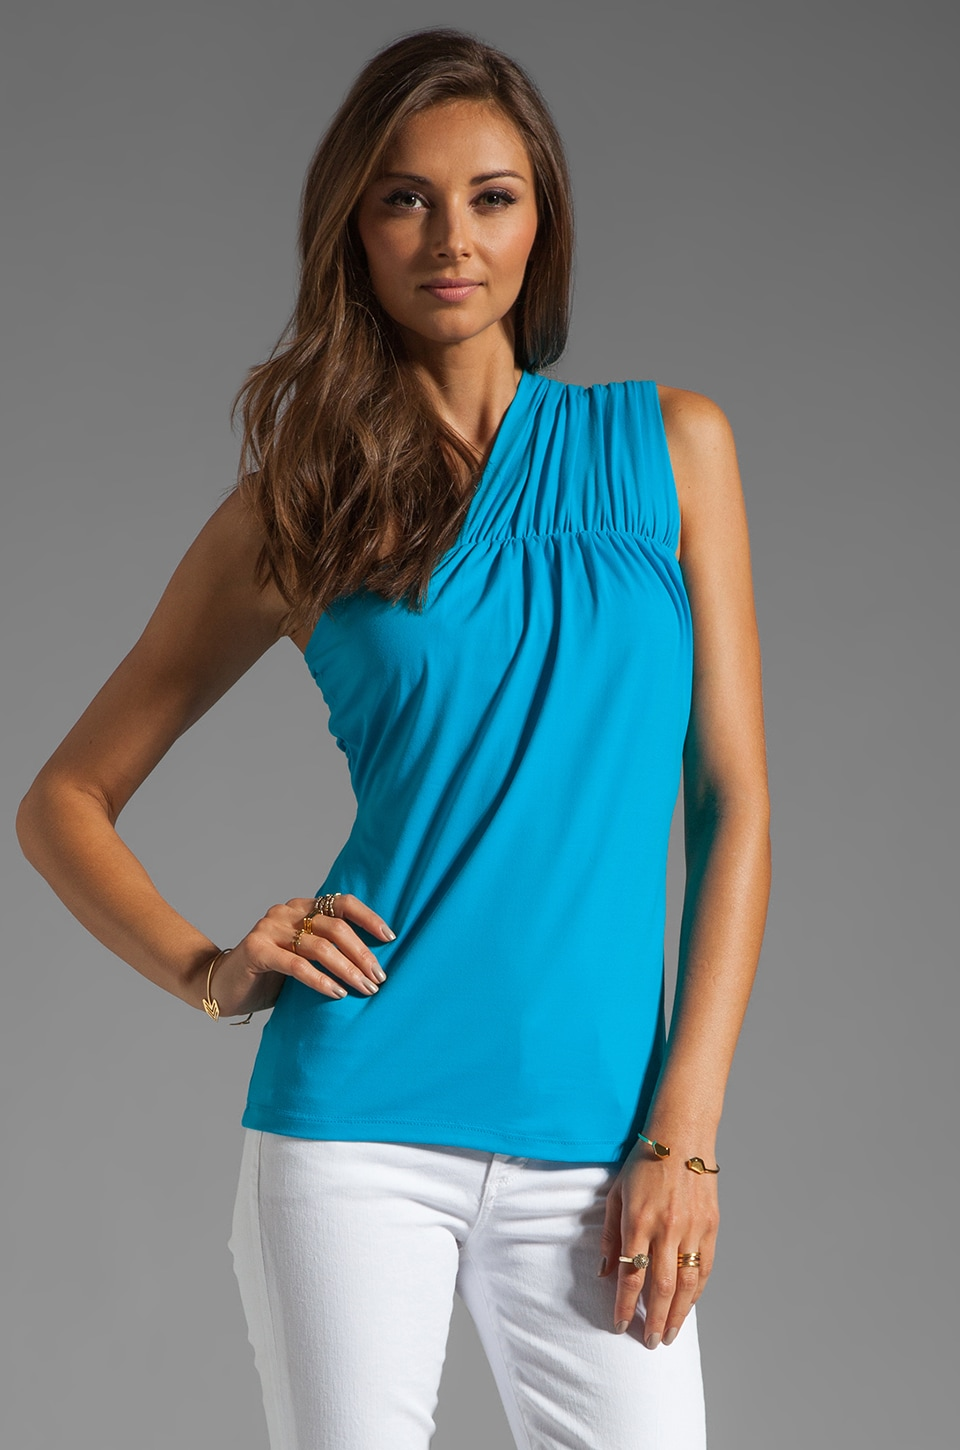 Susana Monaco Light Supplex Sarah Top in Atomic Blue